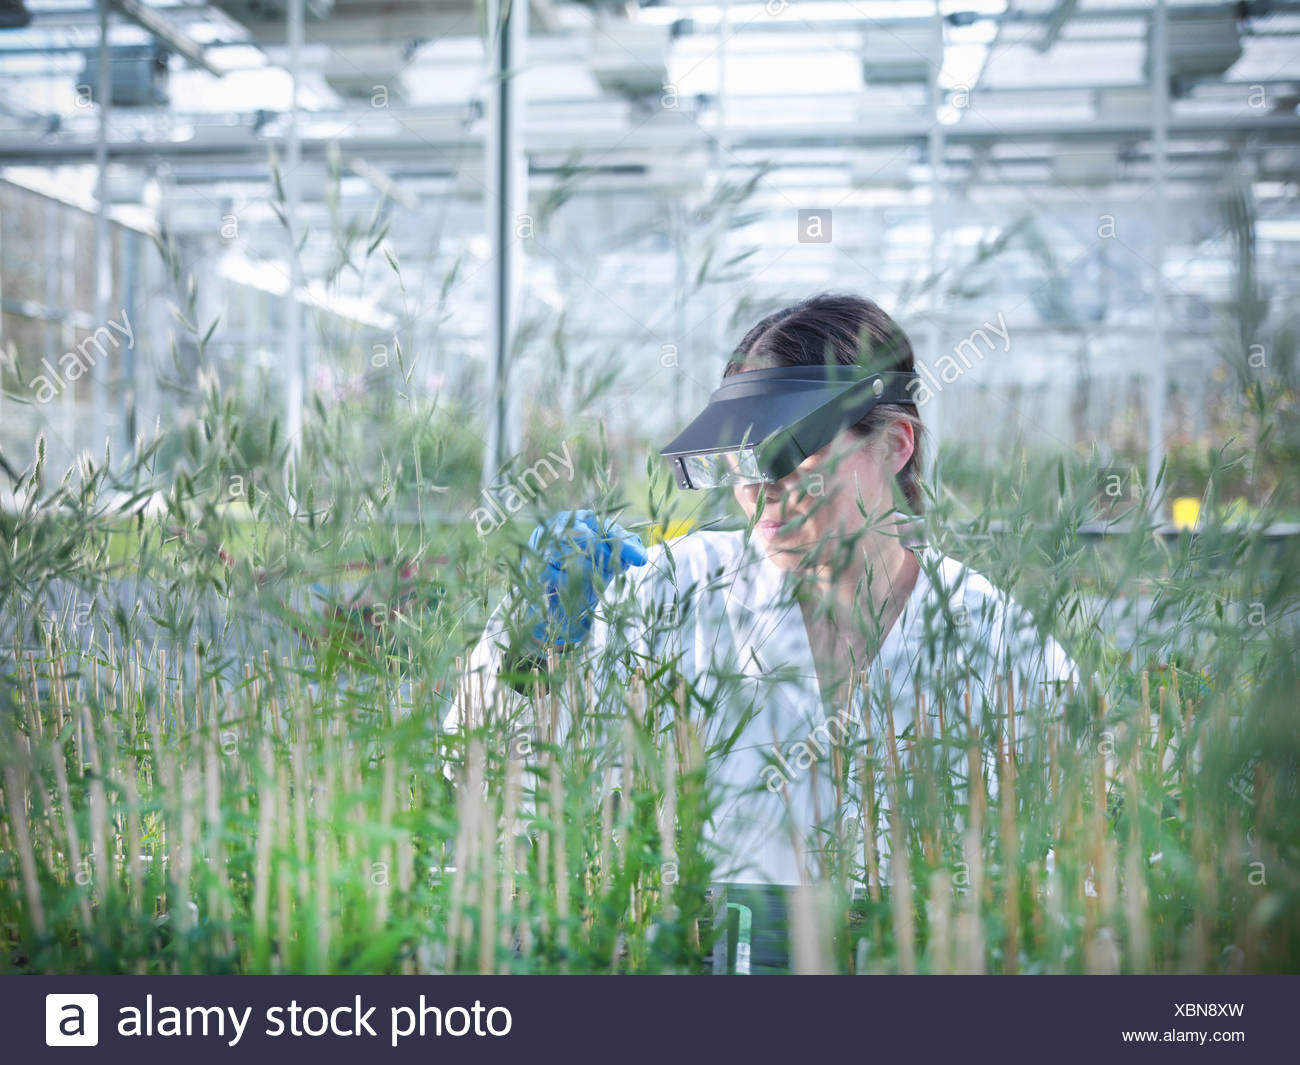 Scientist examining plants in greenhouse - Stock Image